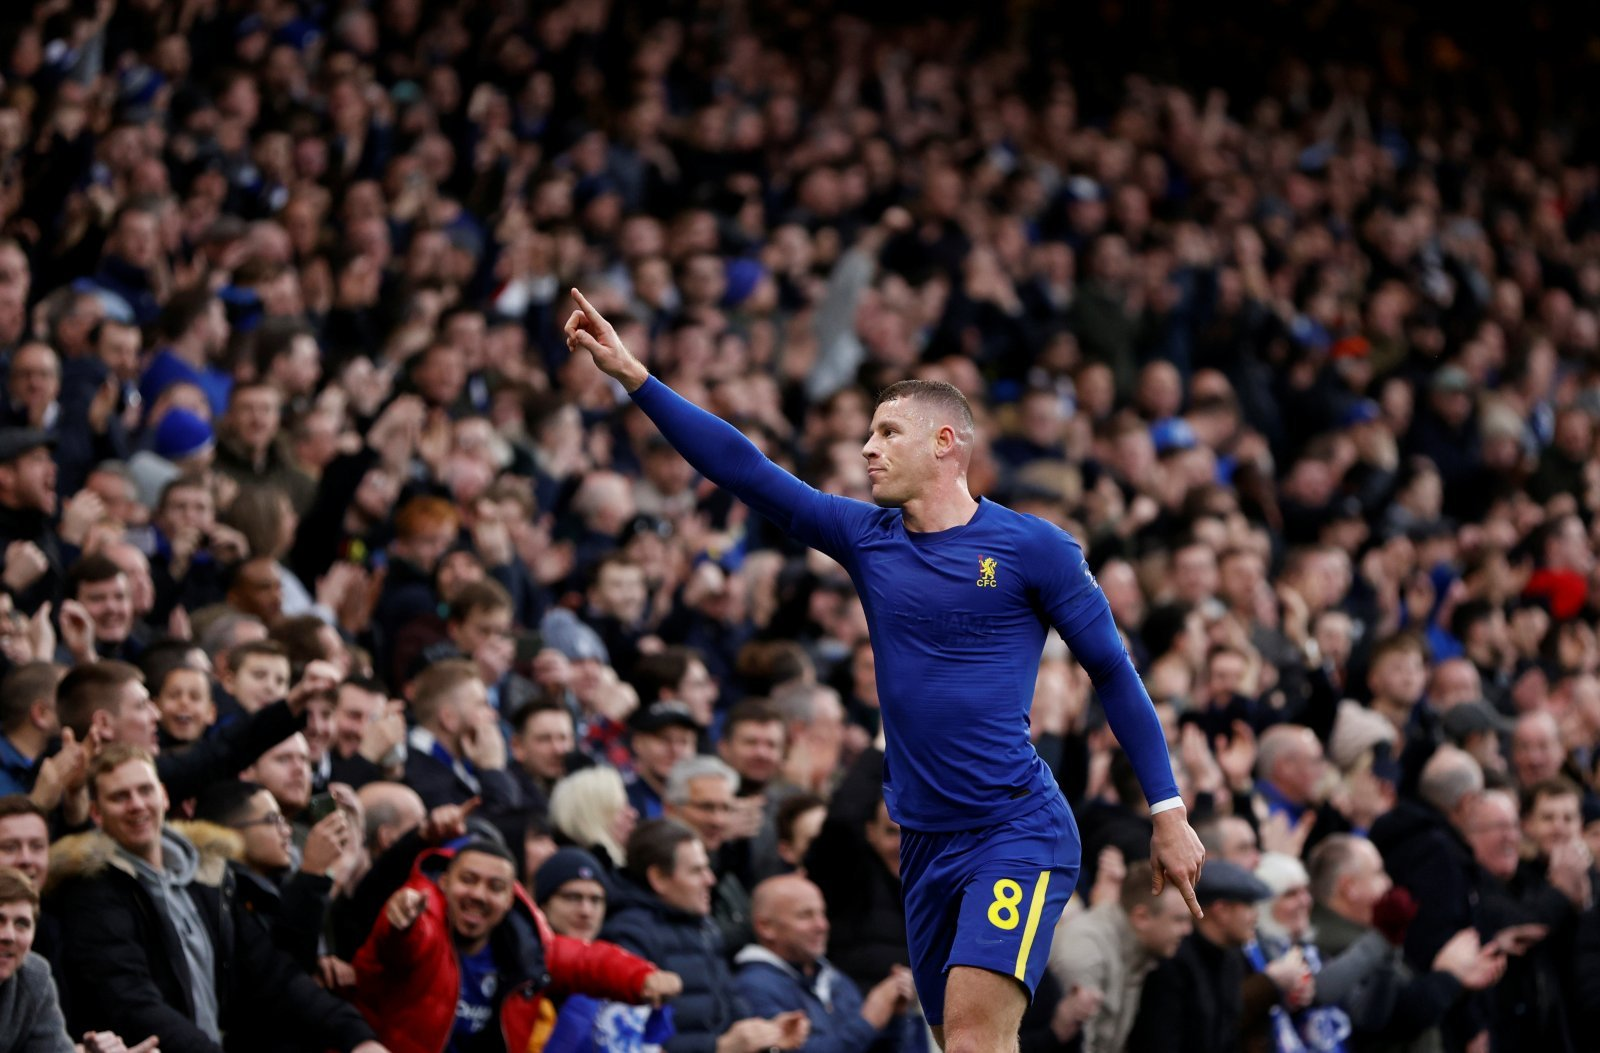 West Ham United: Fans would be keen on Ross Barkley transfer